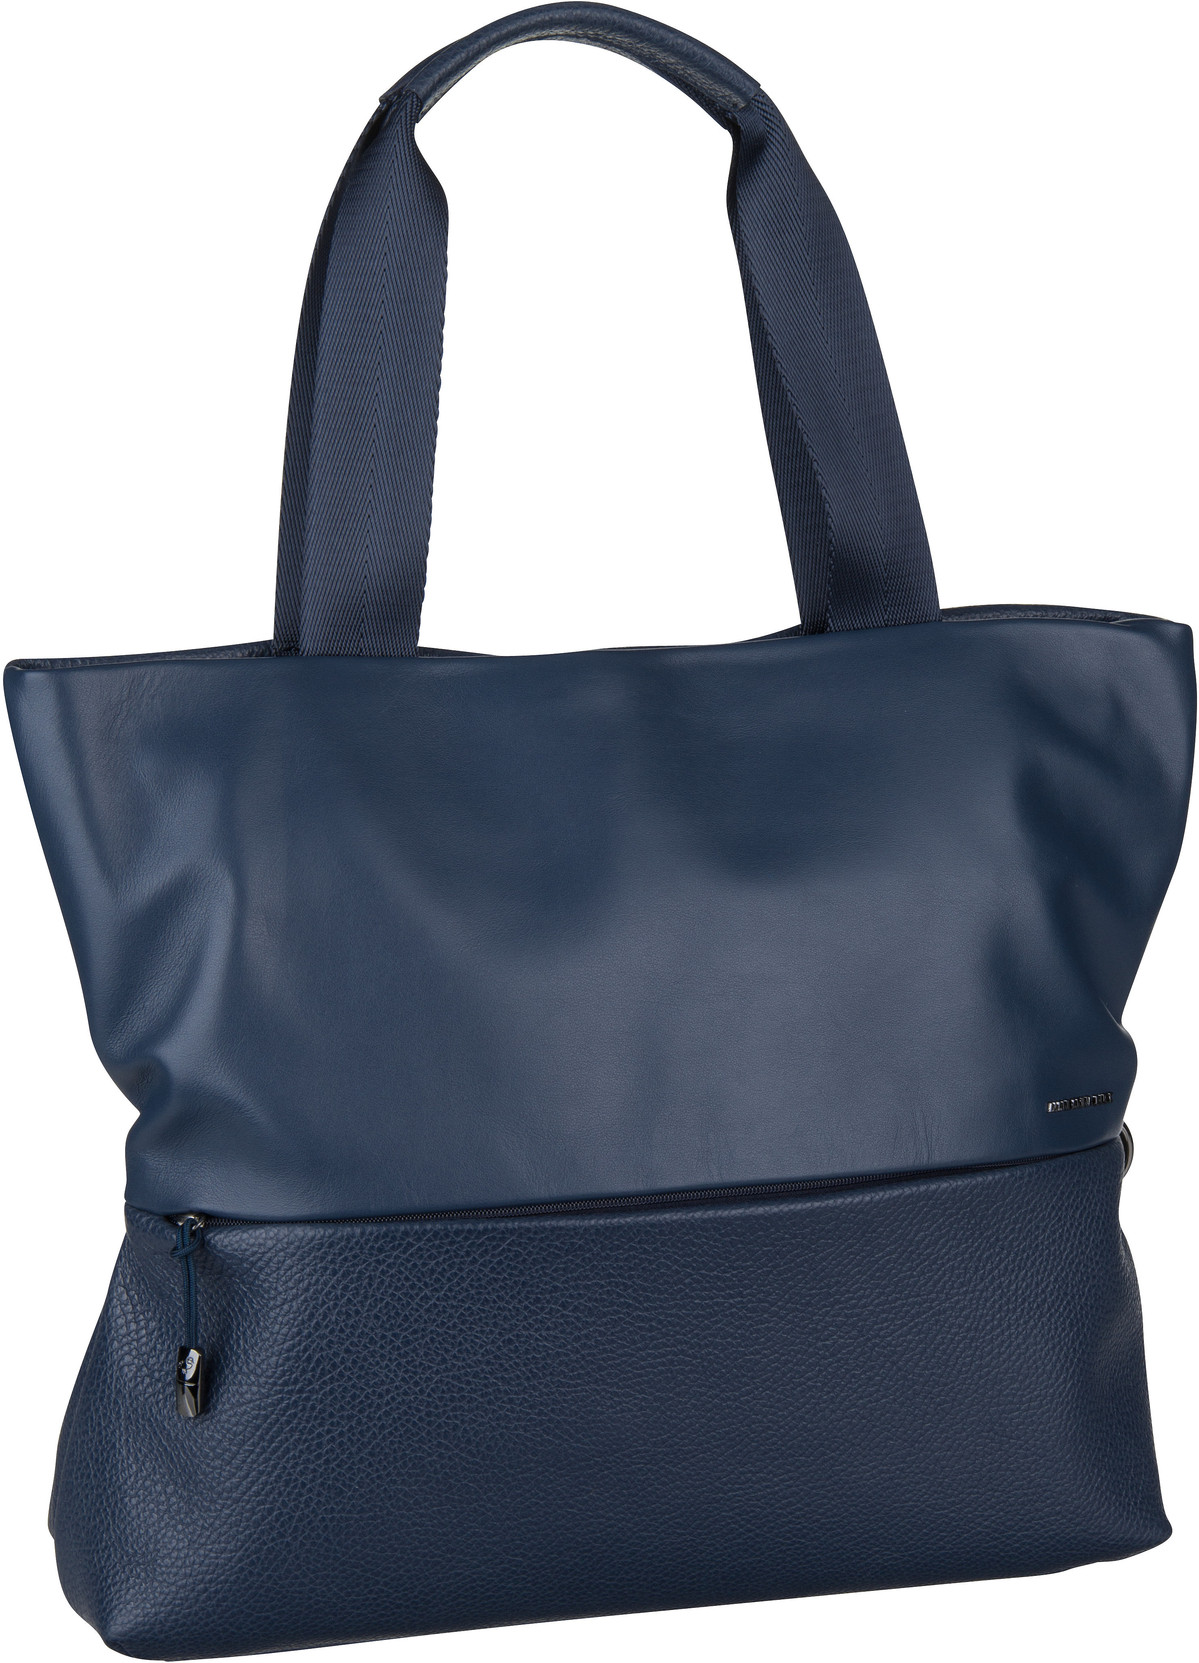 Handtasche Athena Shopper UPT04 Dress Blue